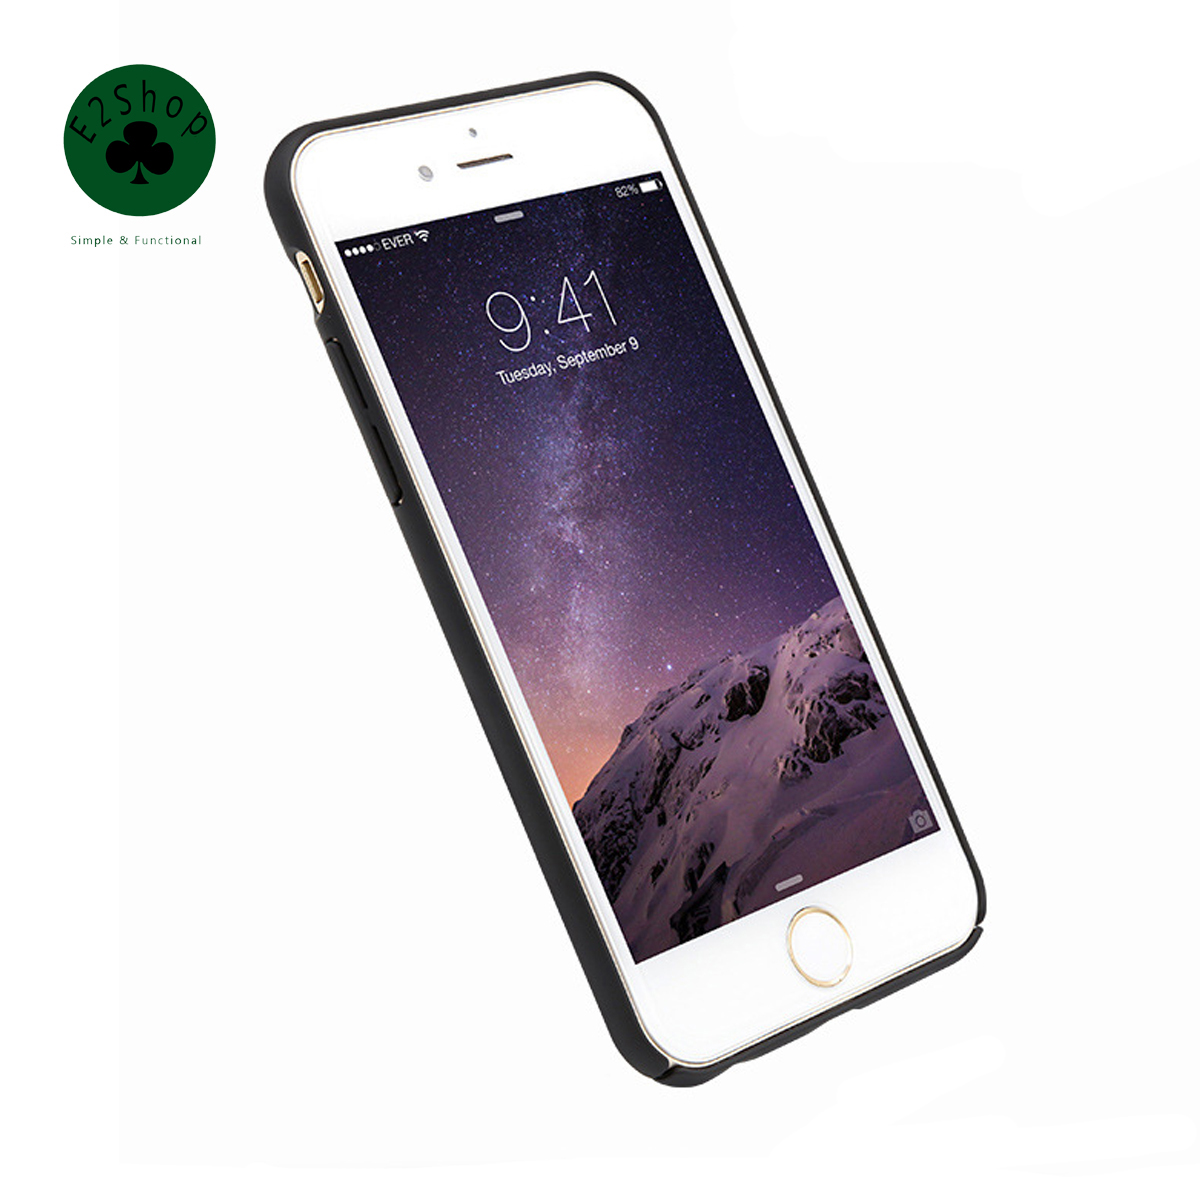 Full Frame Pure Color Matte Plastic Hard Case Mobile Phone Shell Slim Housing Simple PC Back Cover  for iPhone 7 6 6S Plus